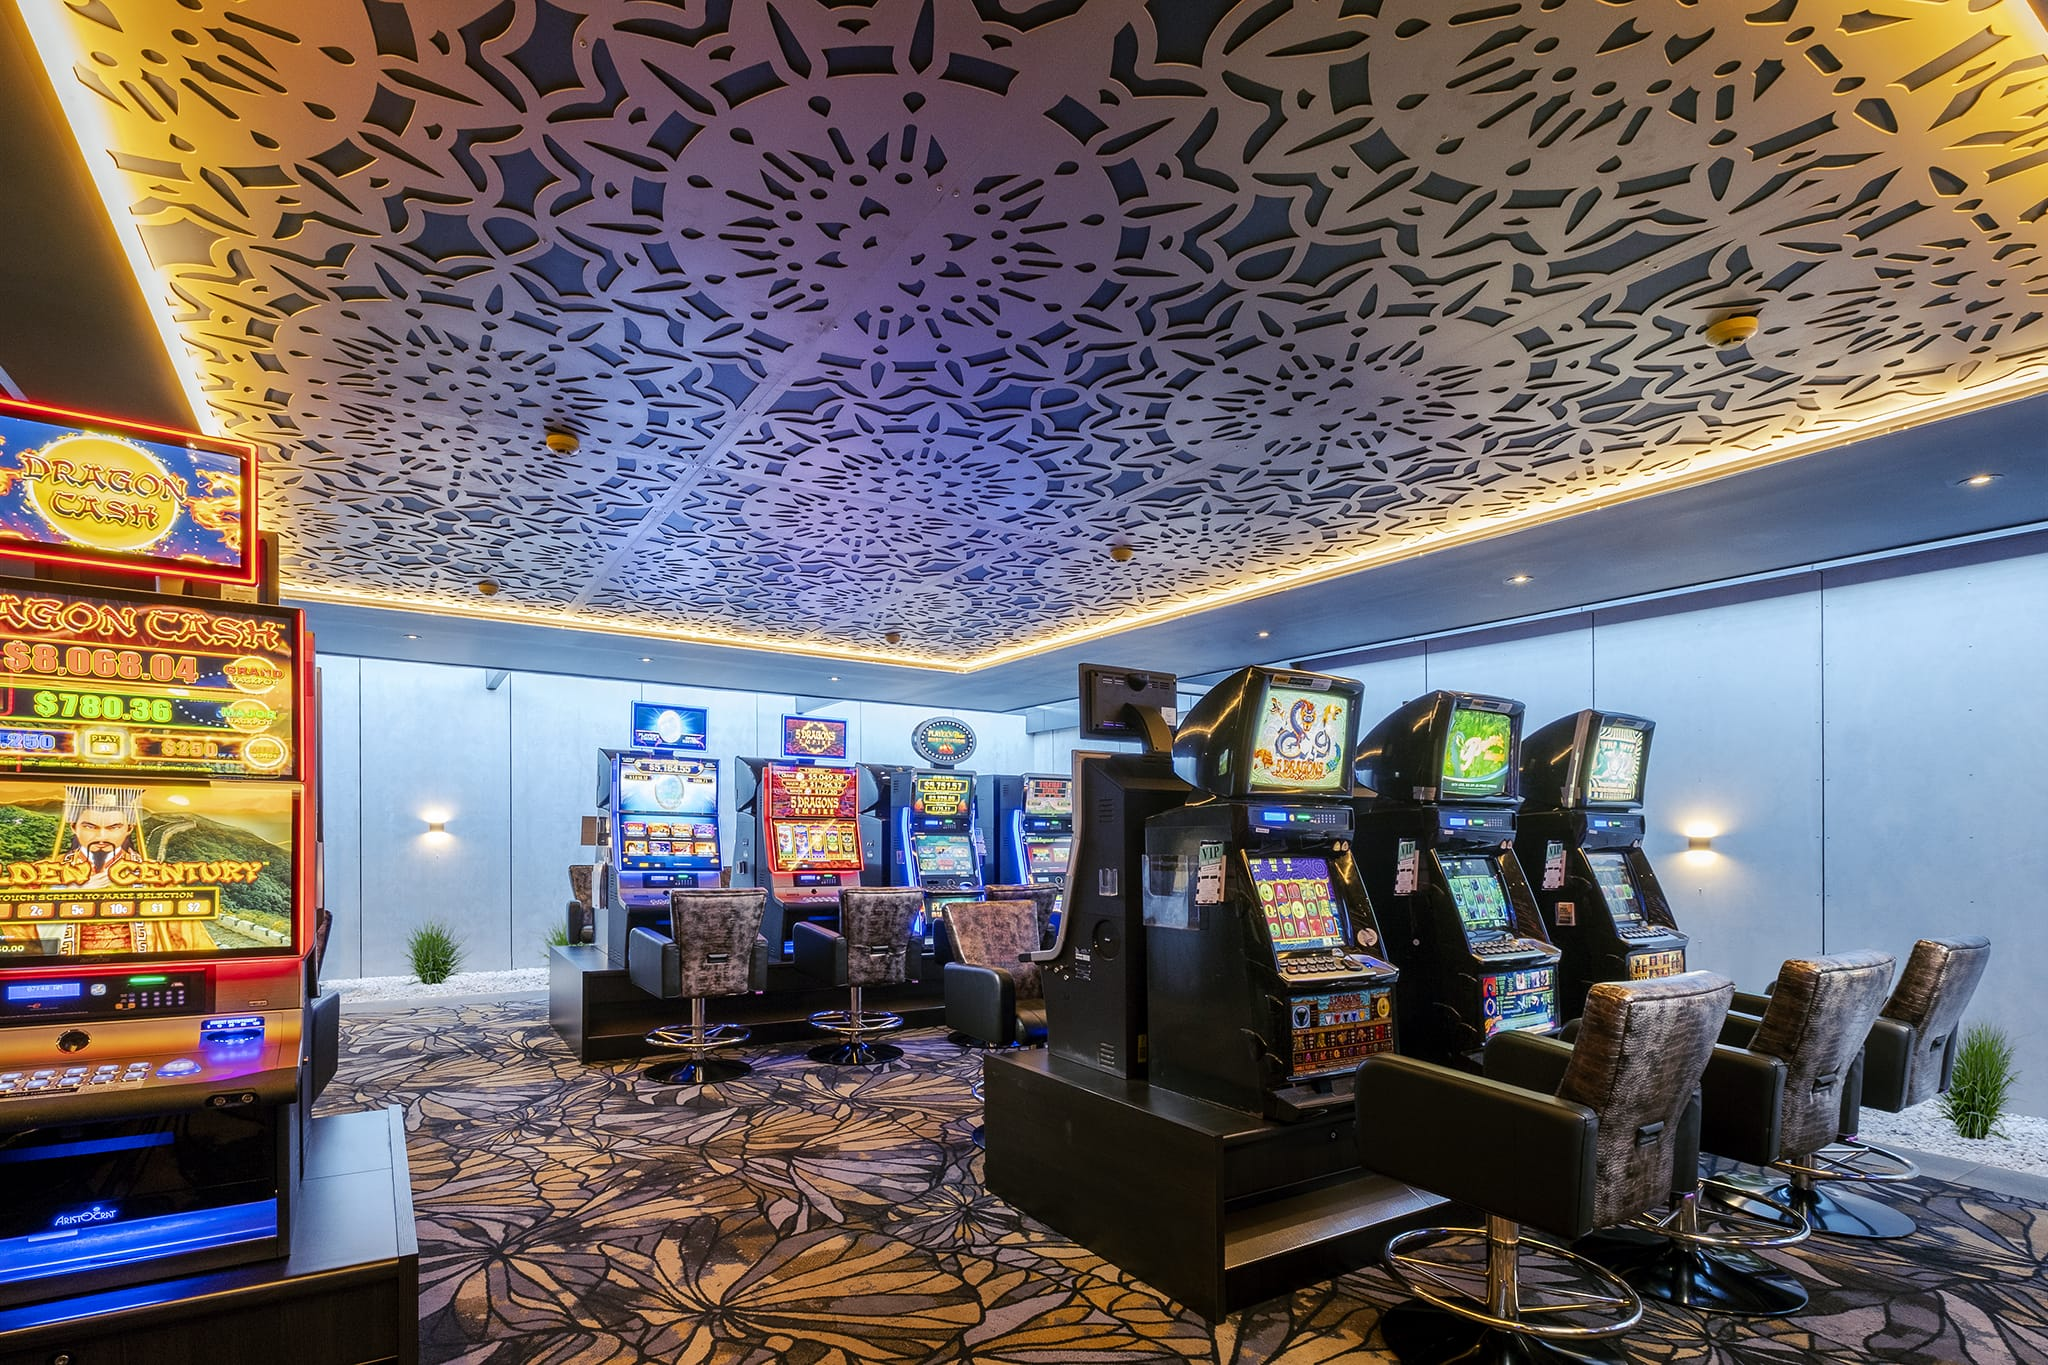 Newcastle  Hotel Gaming Room Design Outdoor Smokie Pokie.jpg